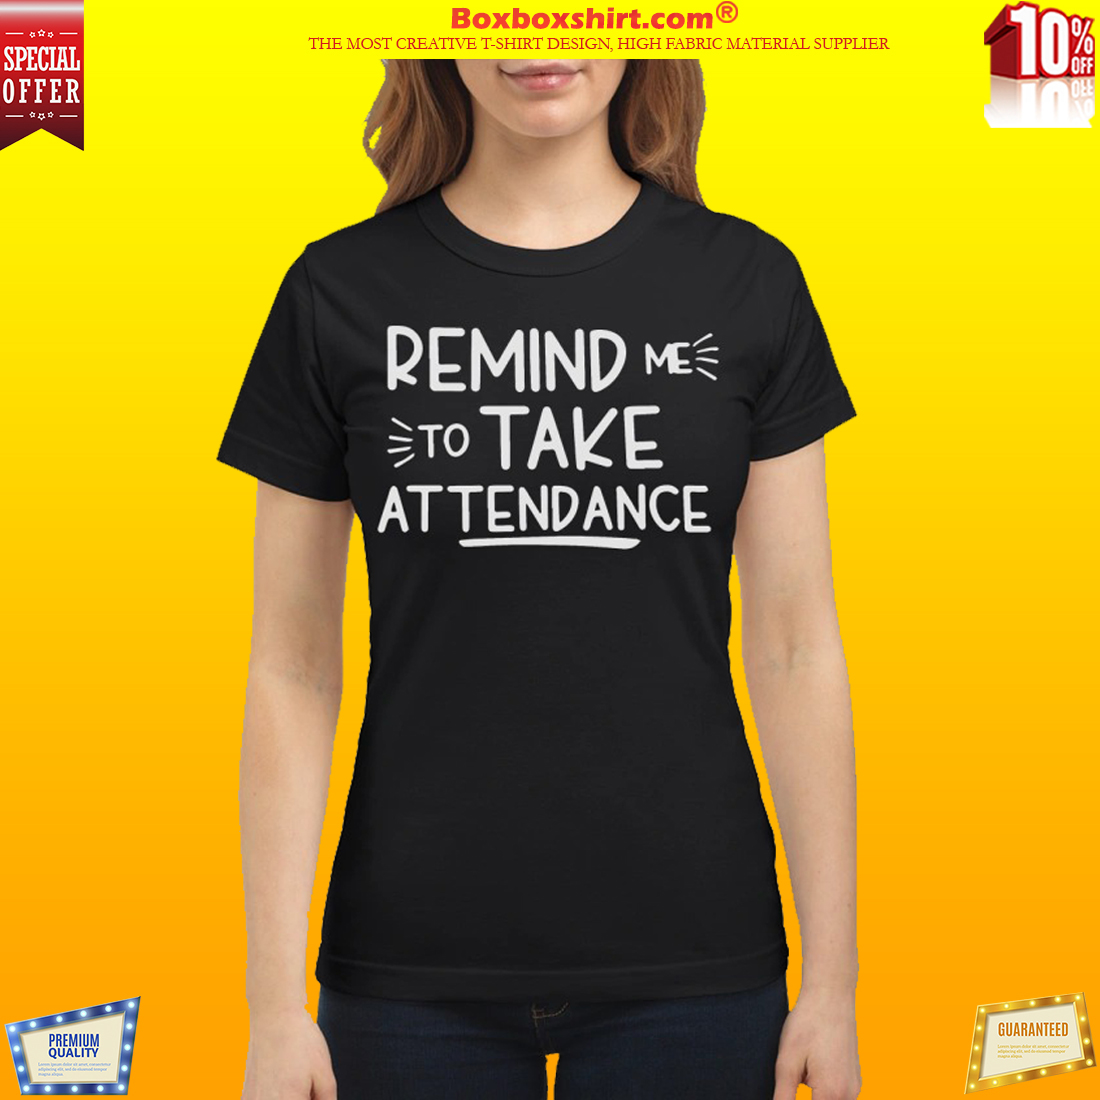 Remind me to take attendance classic shirt and sweatshirt